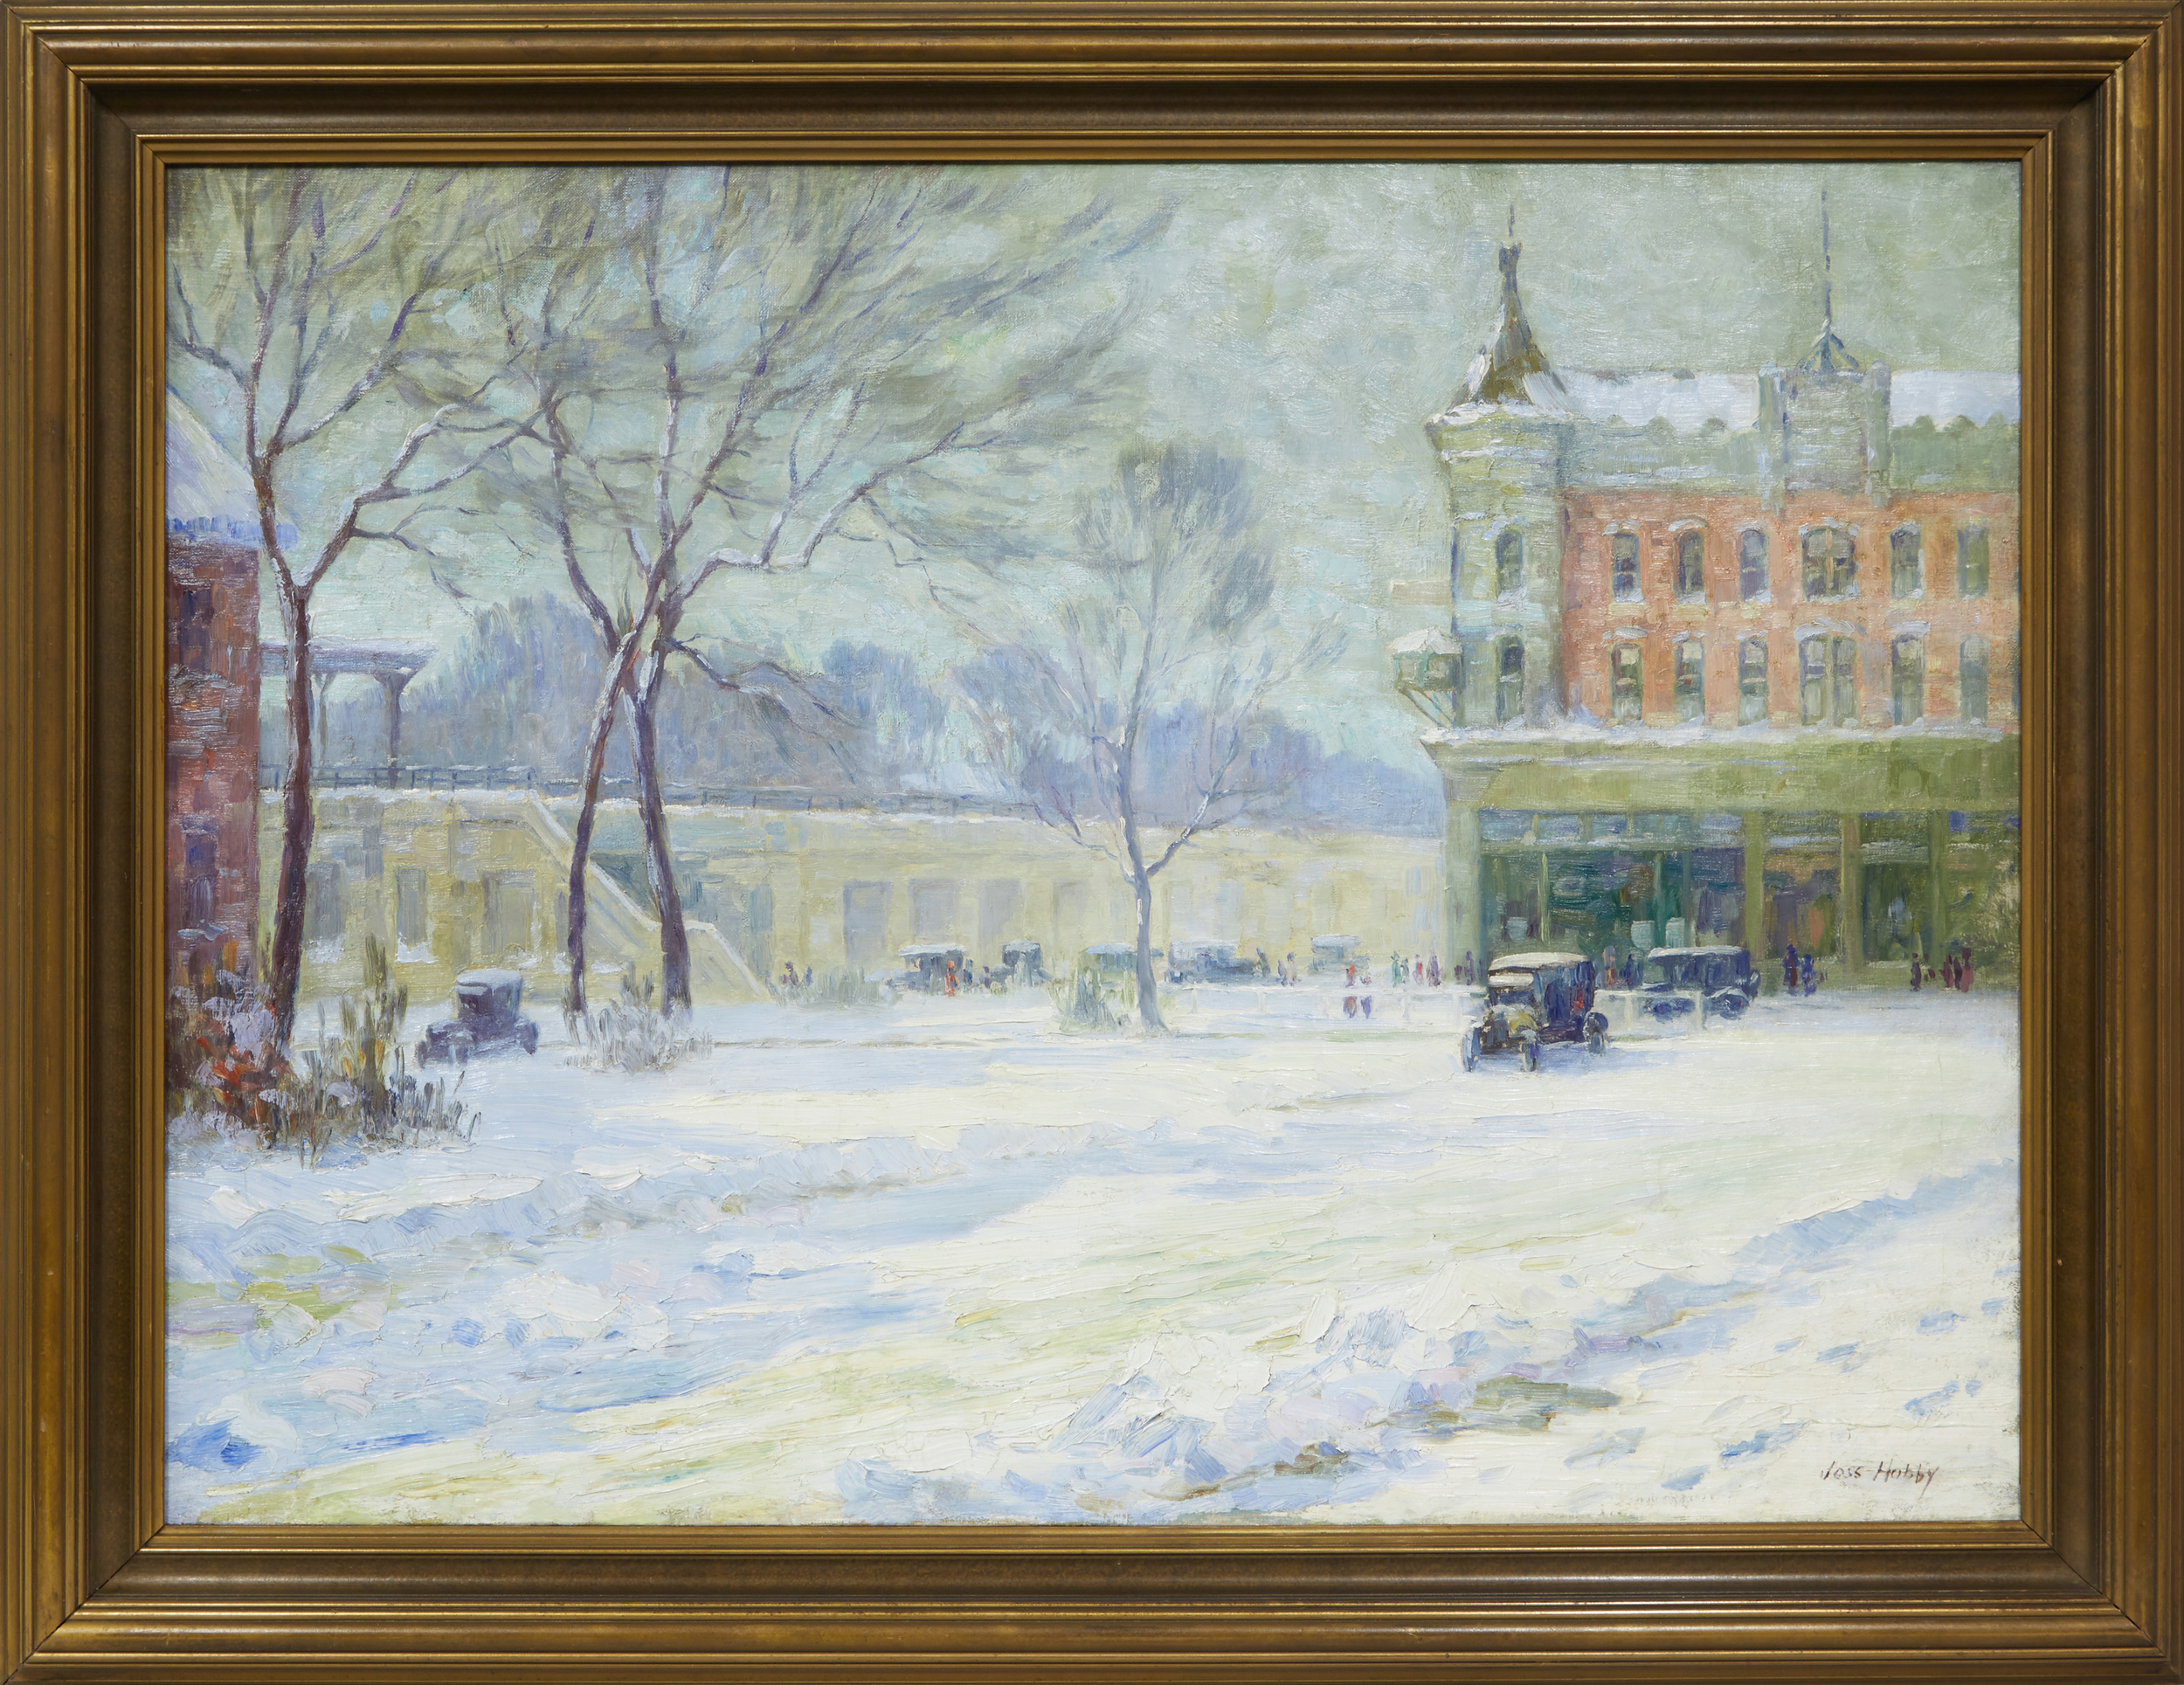 Reinstalled in the original frame, the snow scene of Oak Park looks as fresh as the day it was painted.